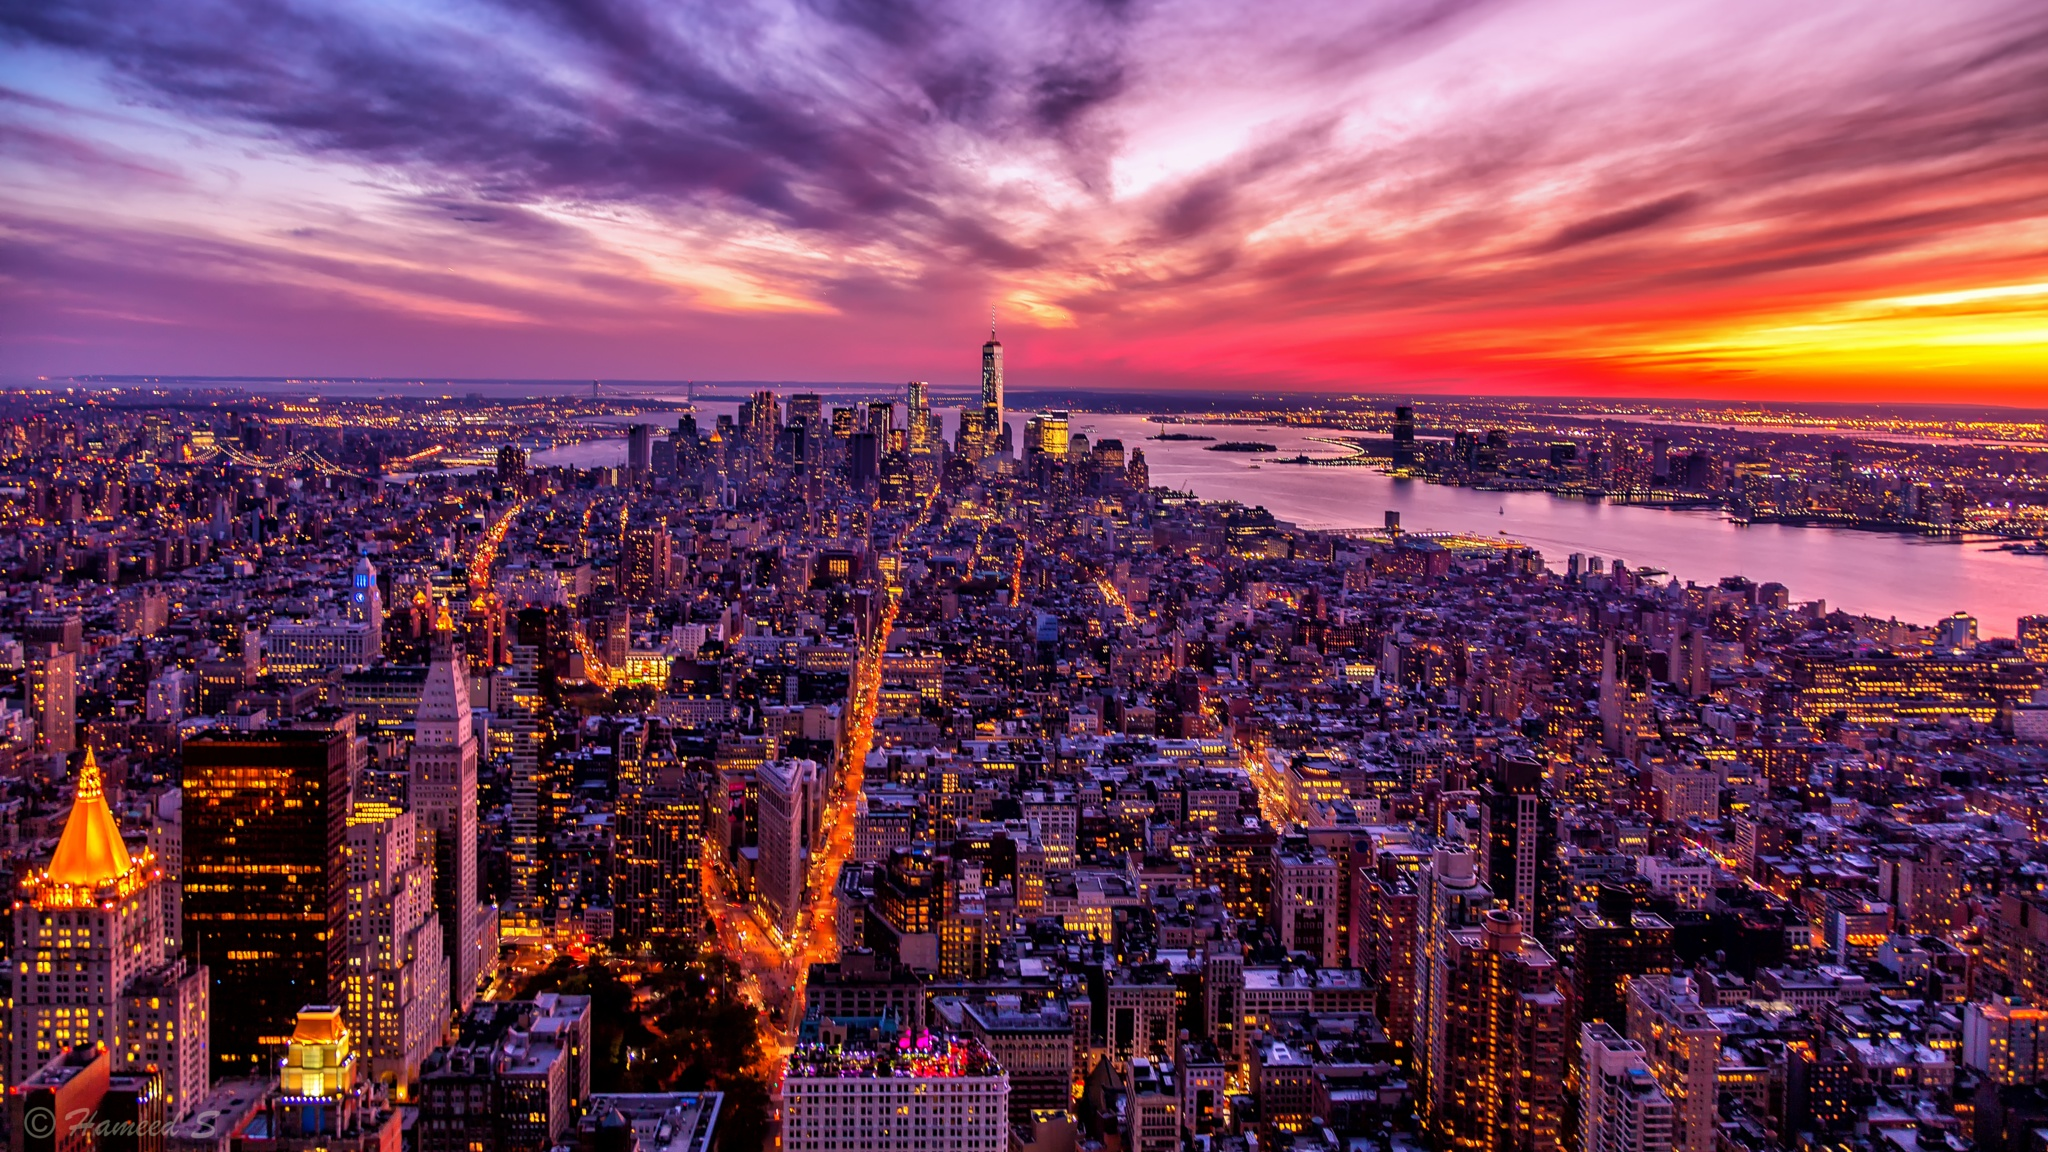 Sunset in Manhattan Island by Hameed S